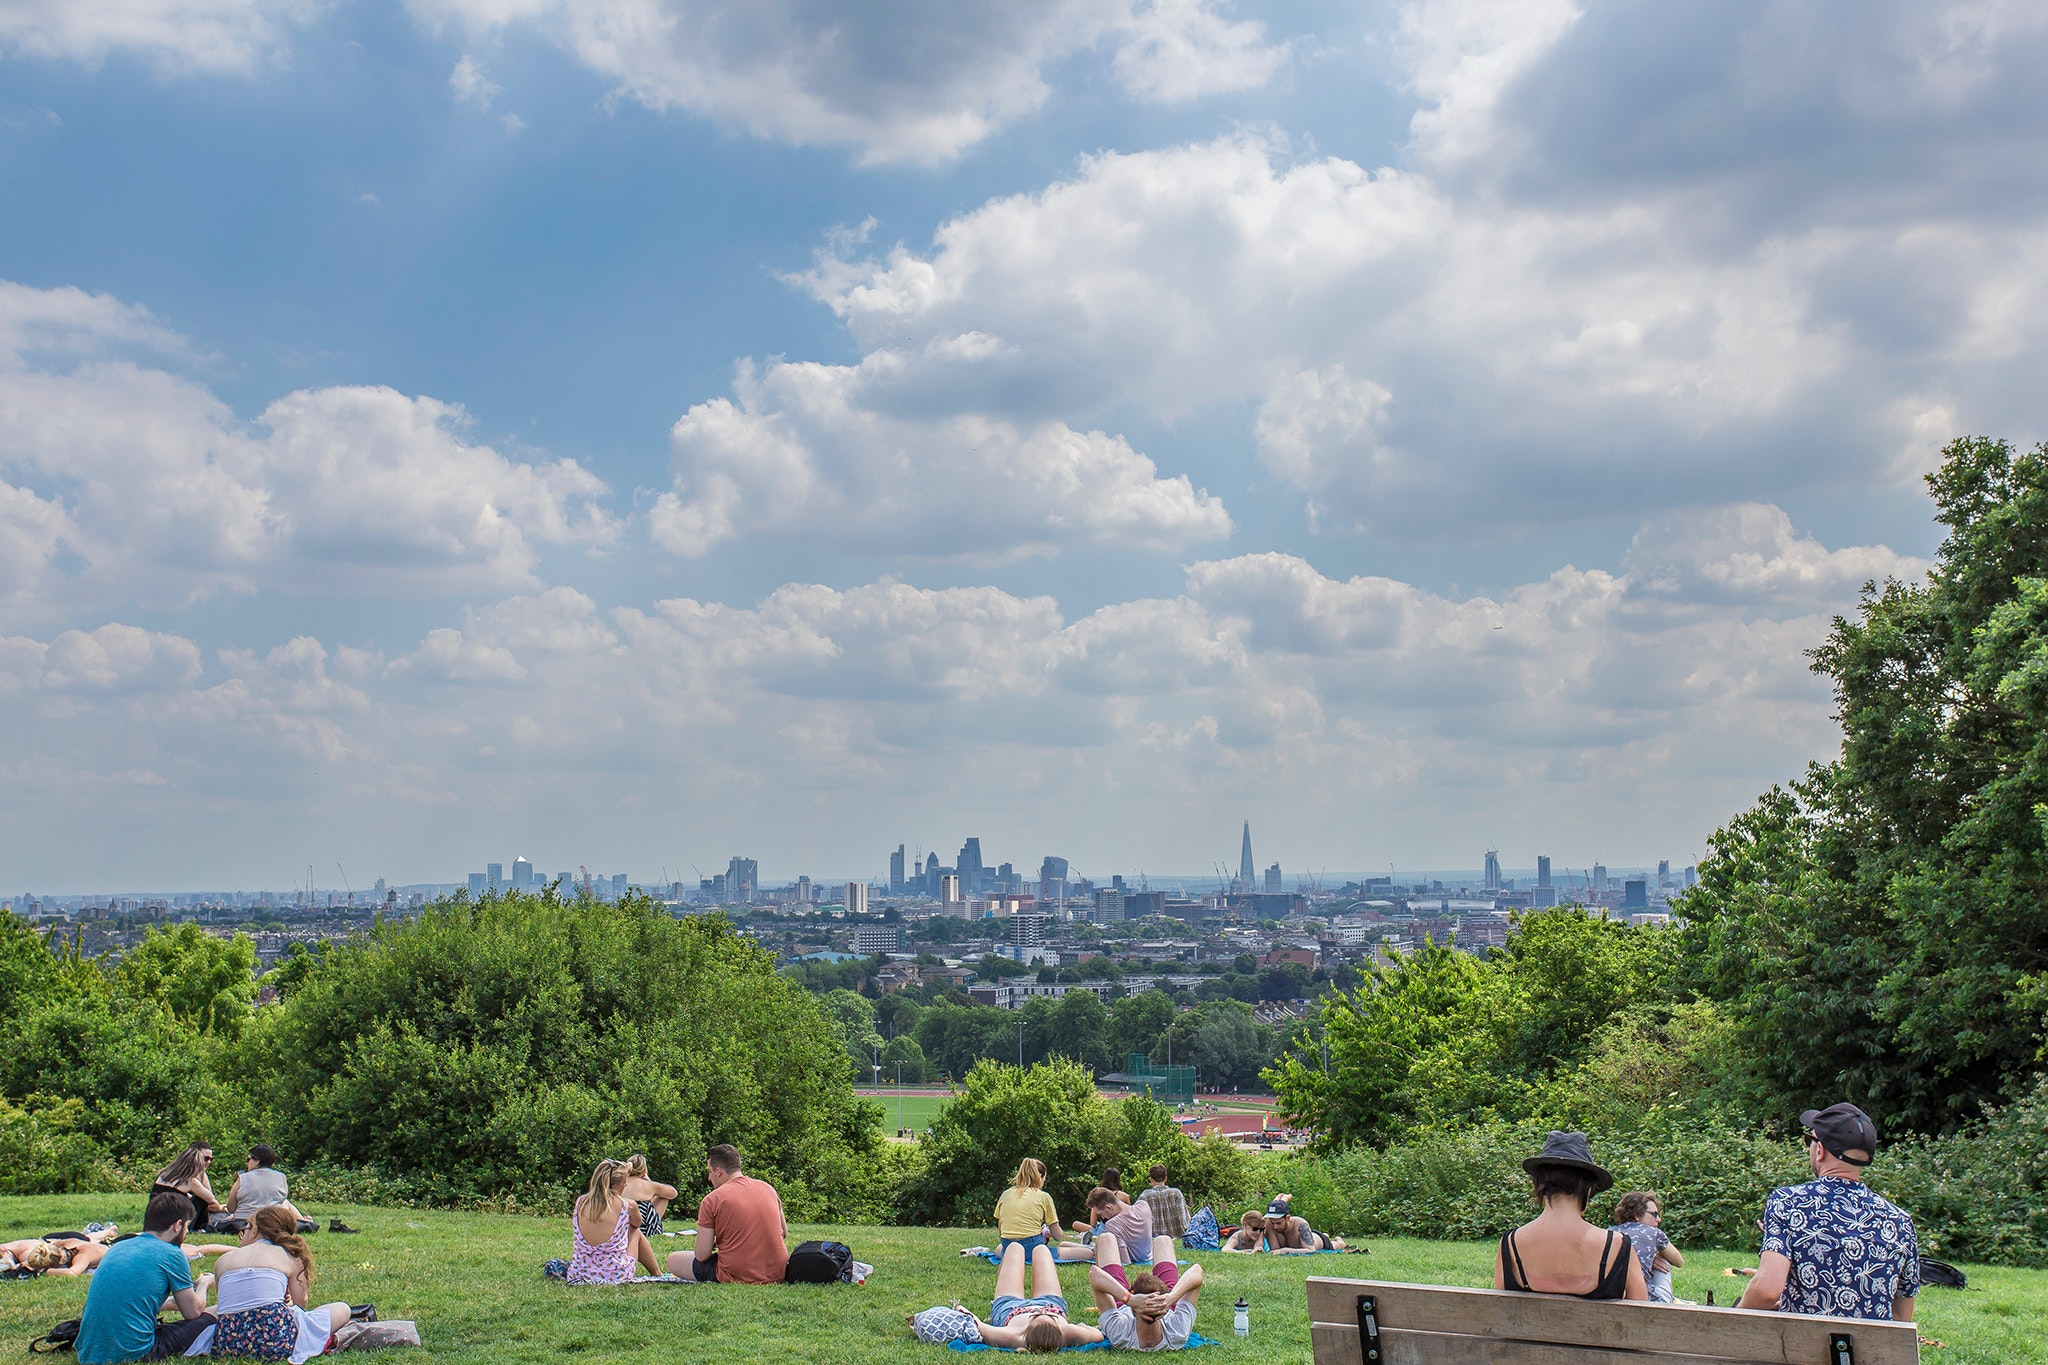 Get lost in tranquil nature with a trip to Hampstead Heath.